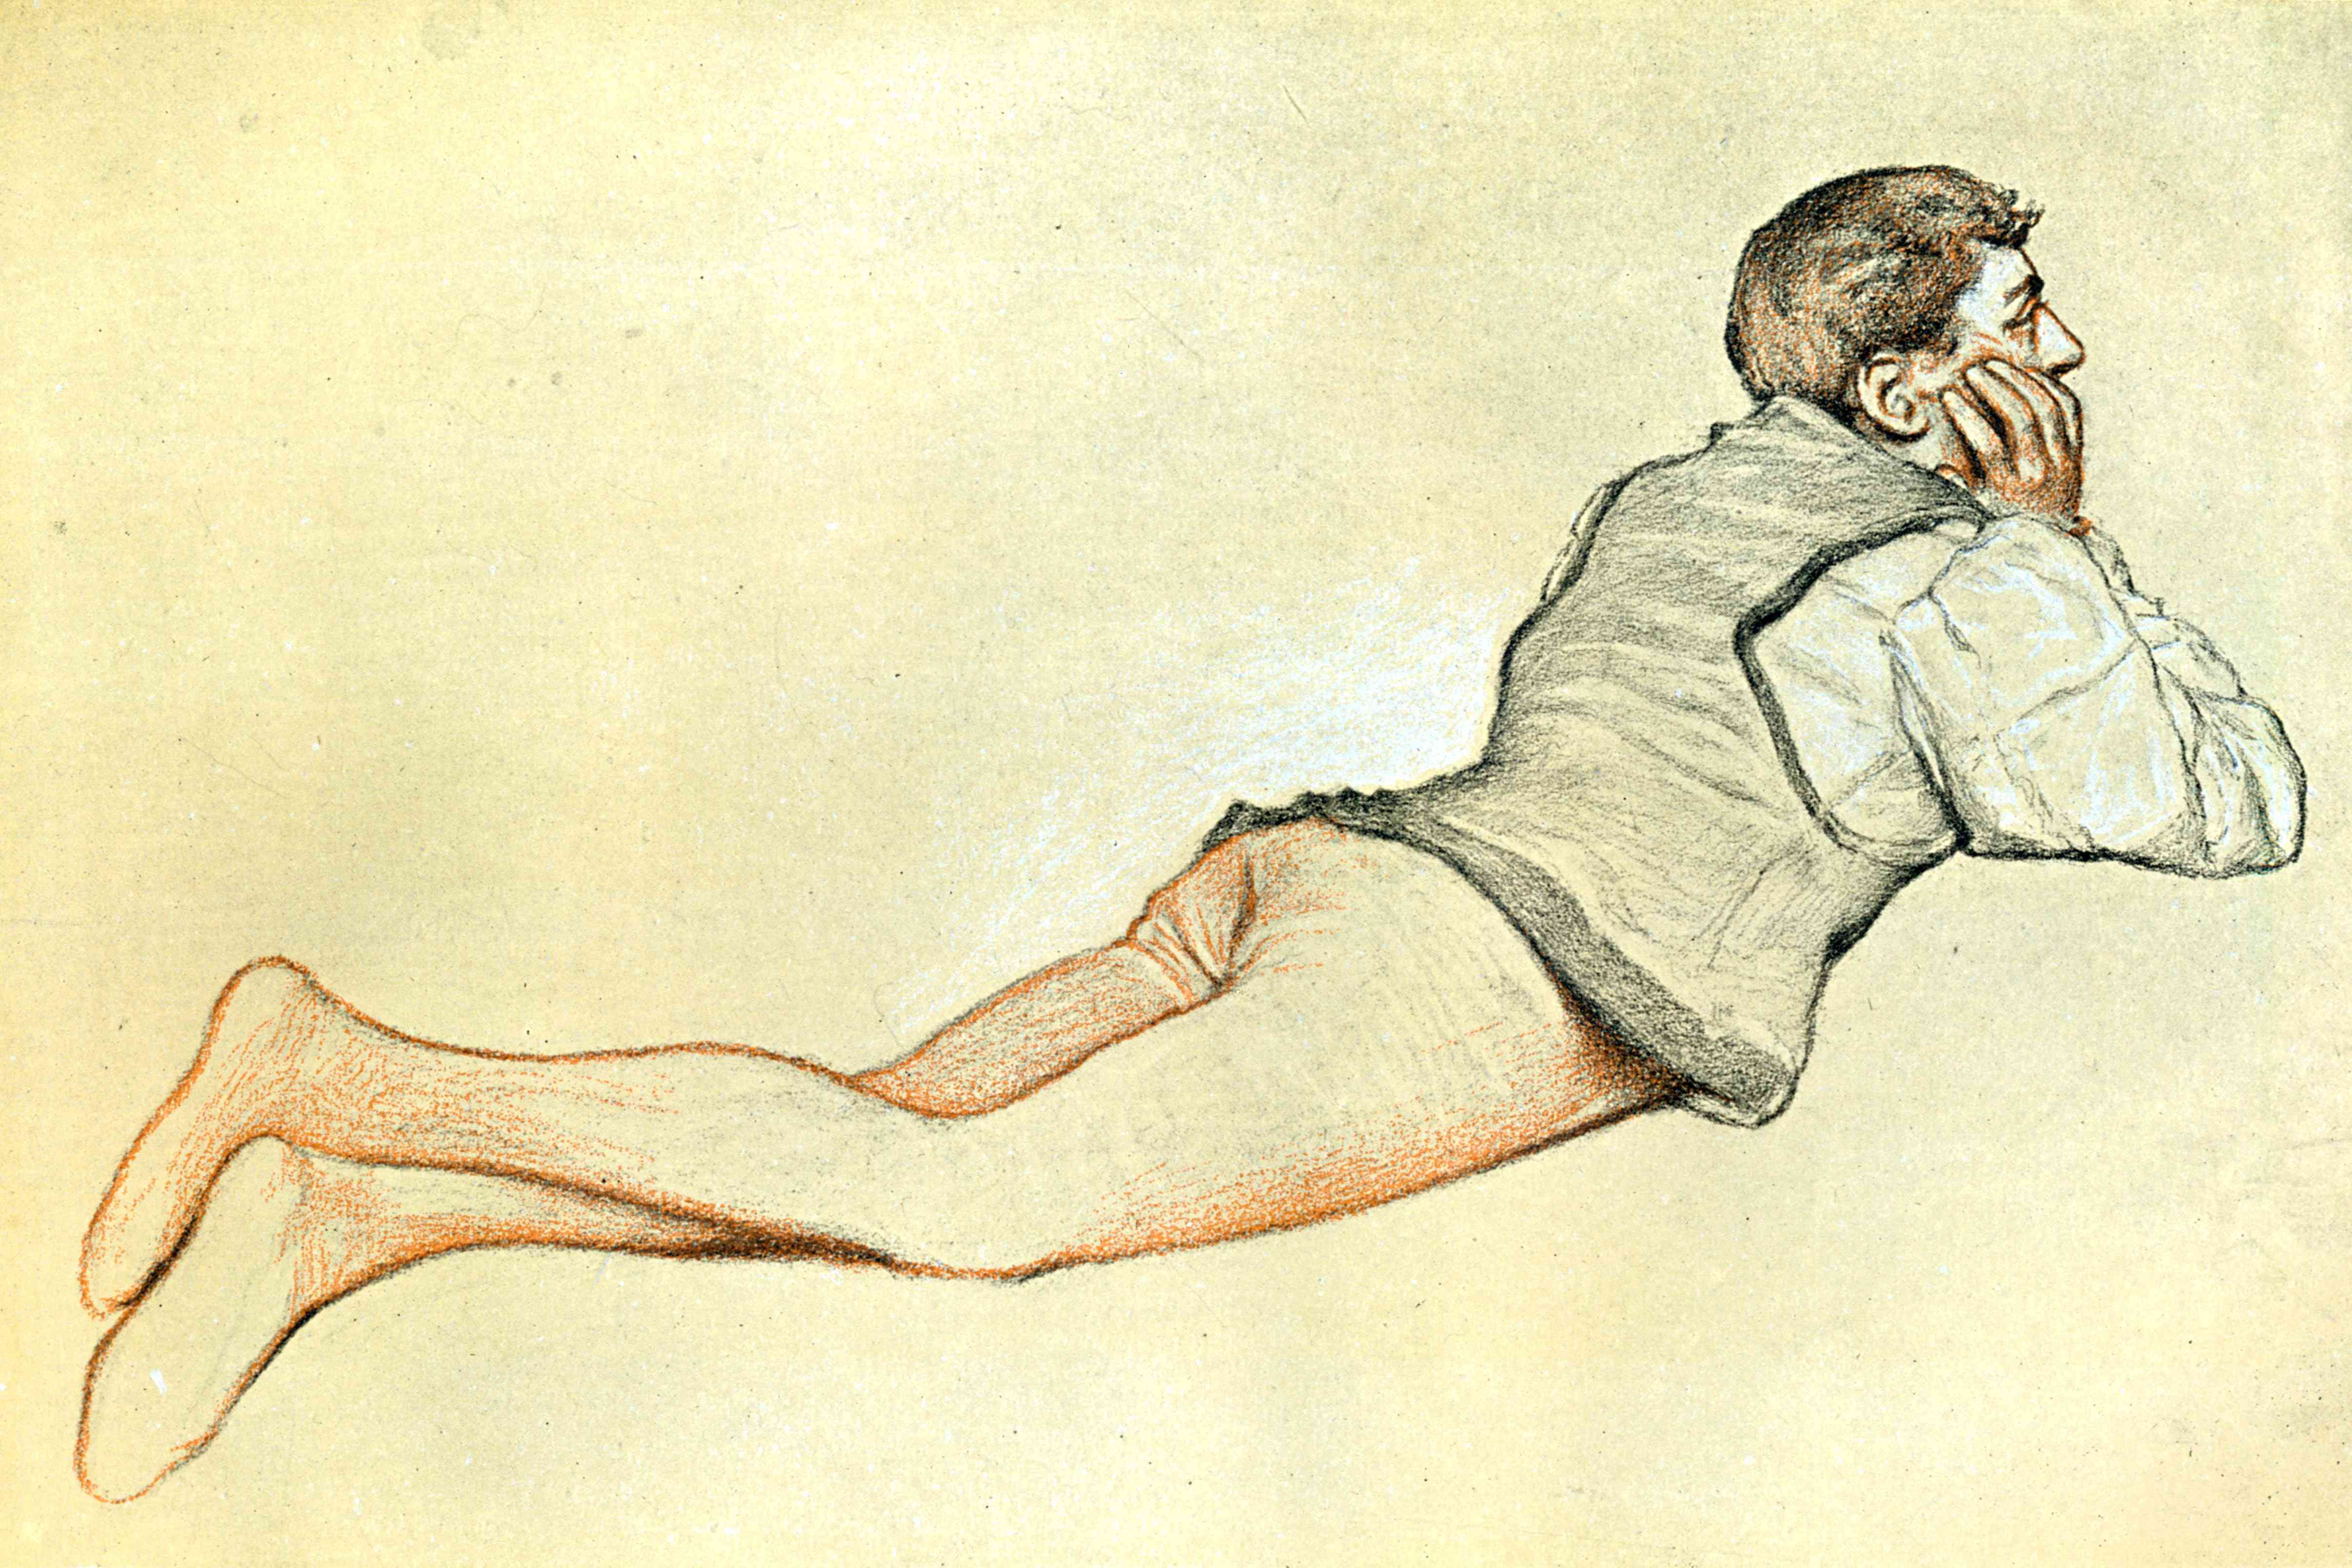 A 14th century man reclining in stockings down to his toes by artist James Dromgole